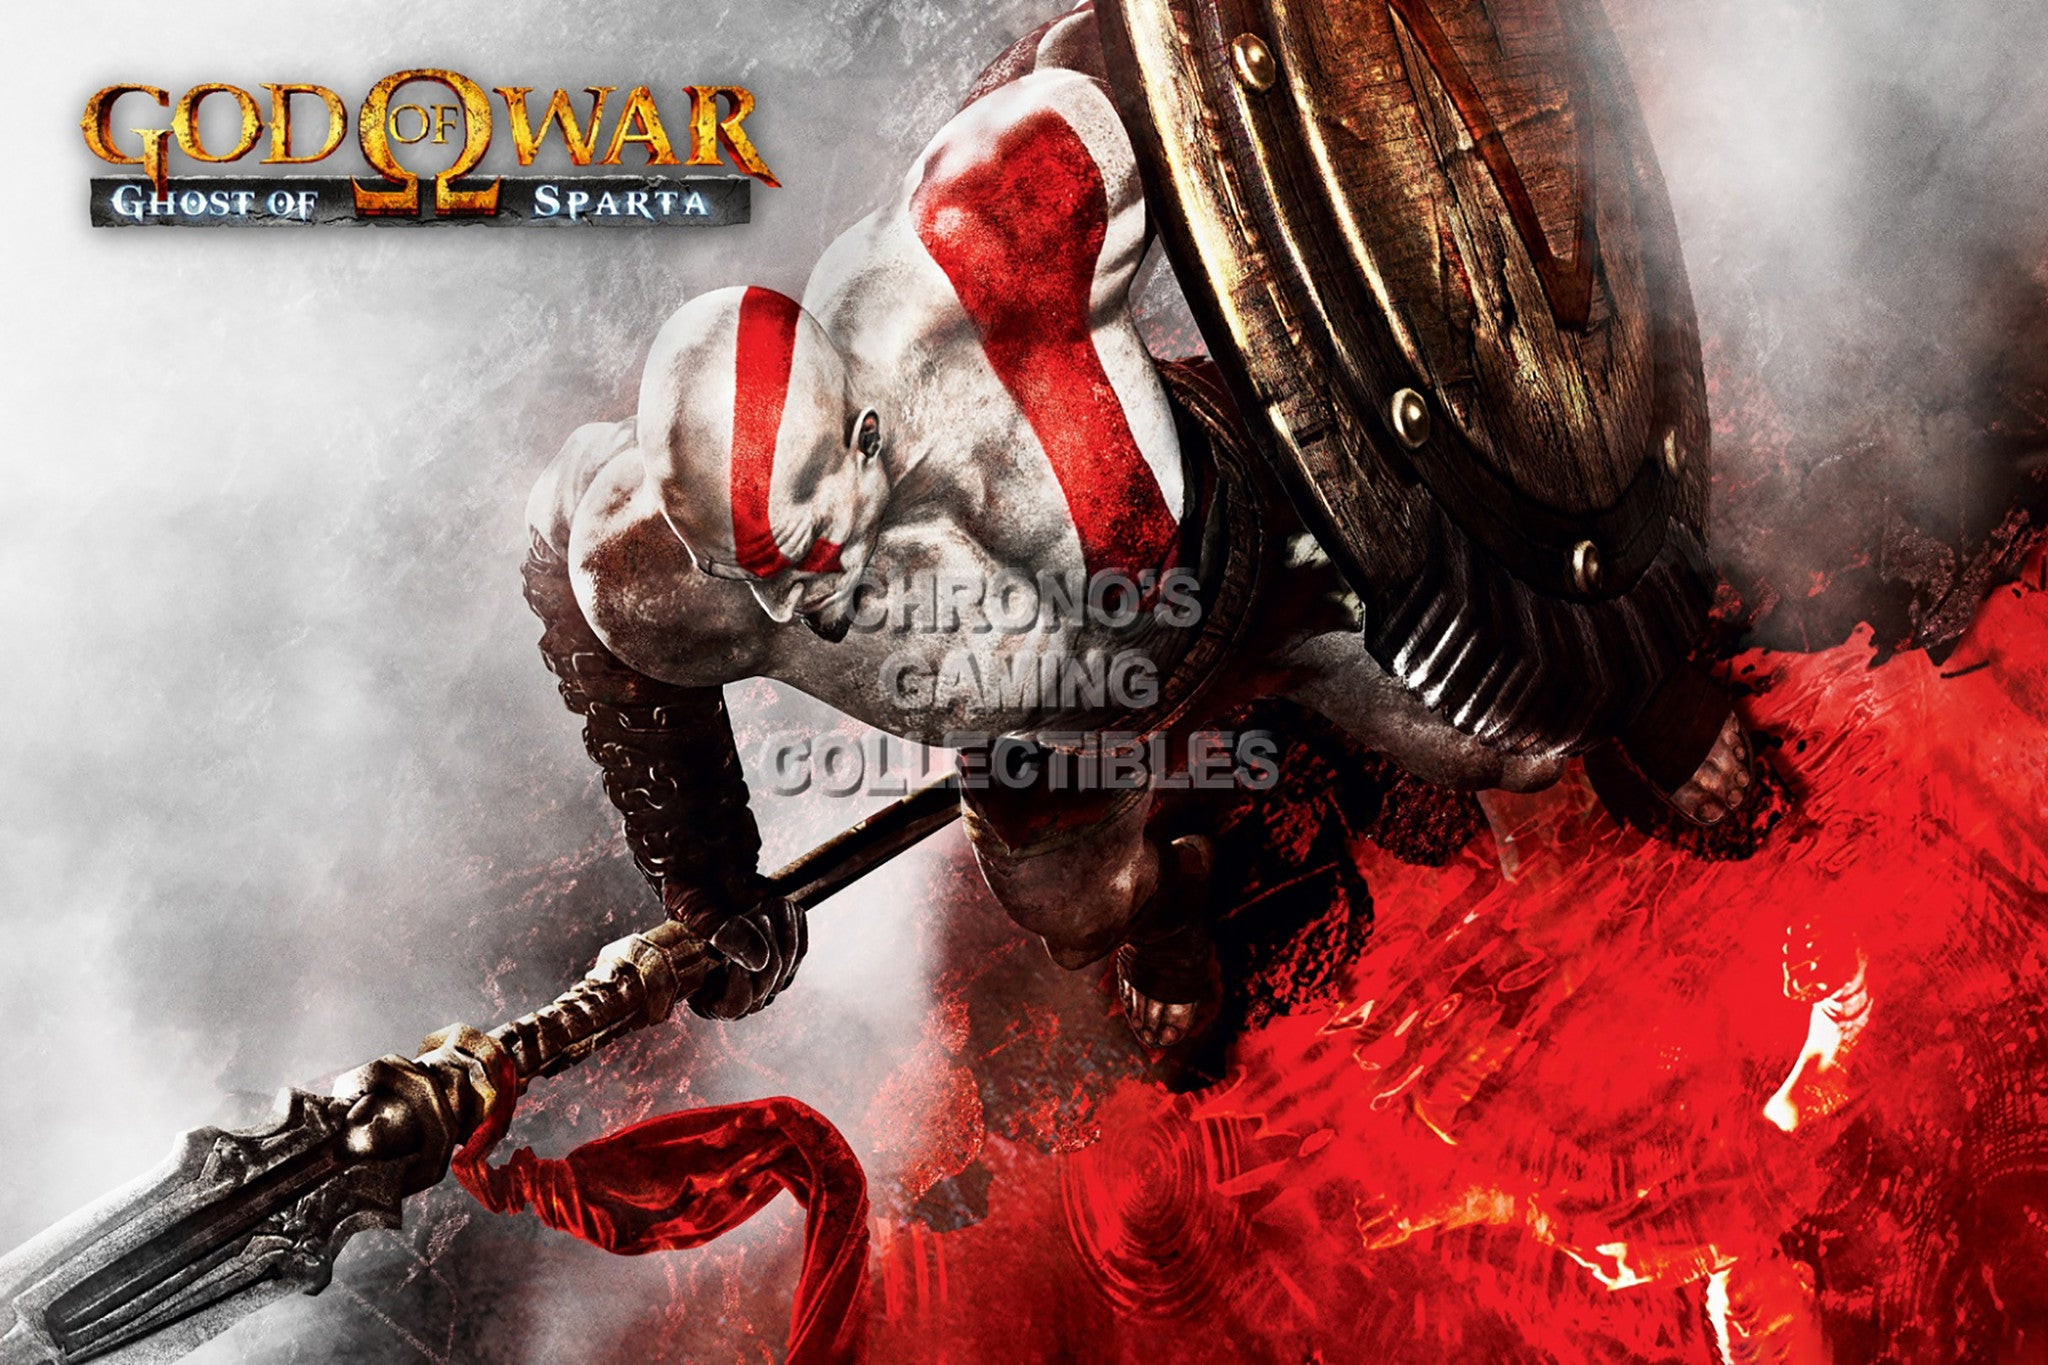 CGC Huge Poster - God of War Ghost of Sparta Kratos Sony PS2 PS3 PS4 PSP  Vita - GOW016